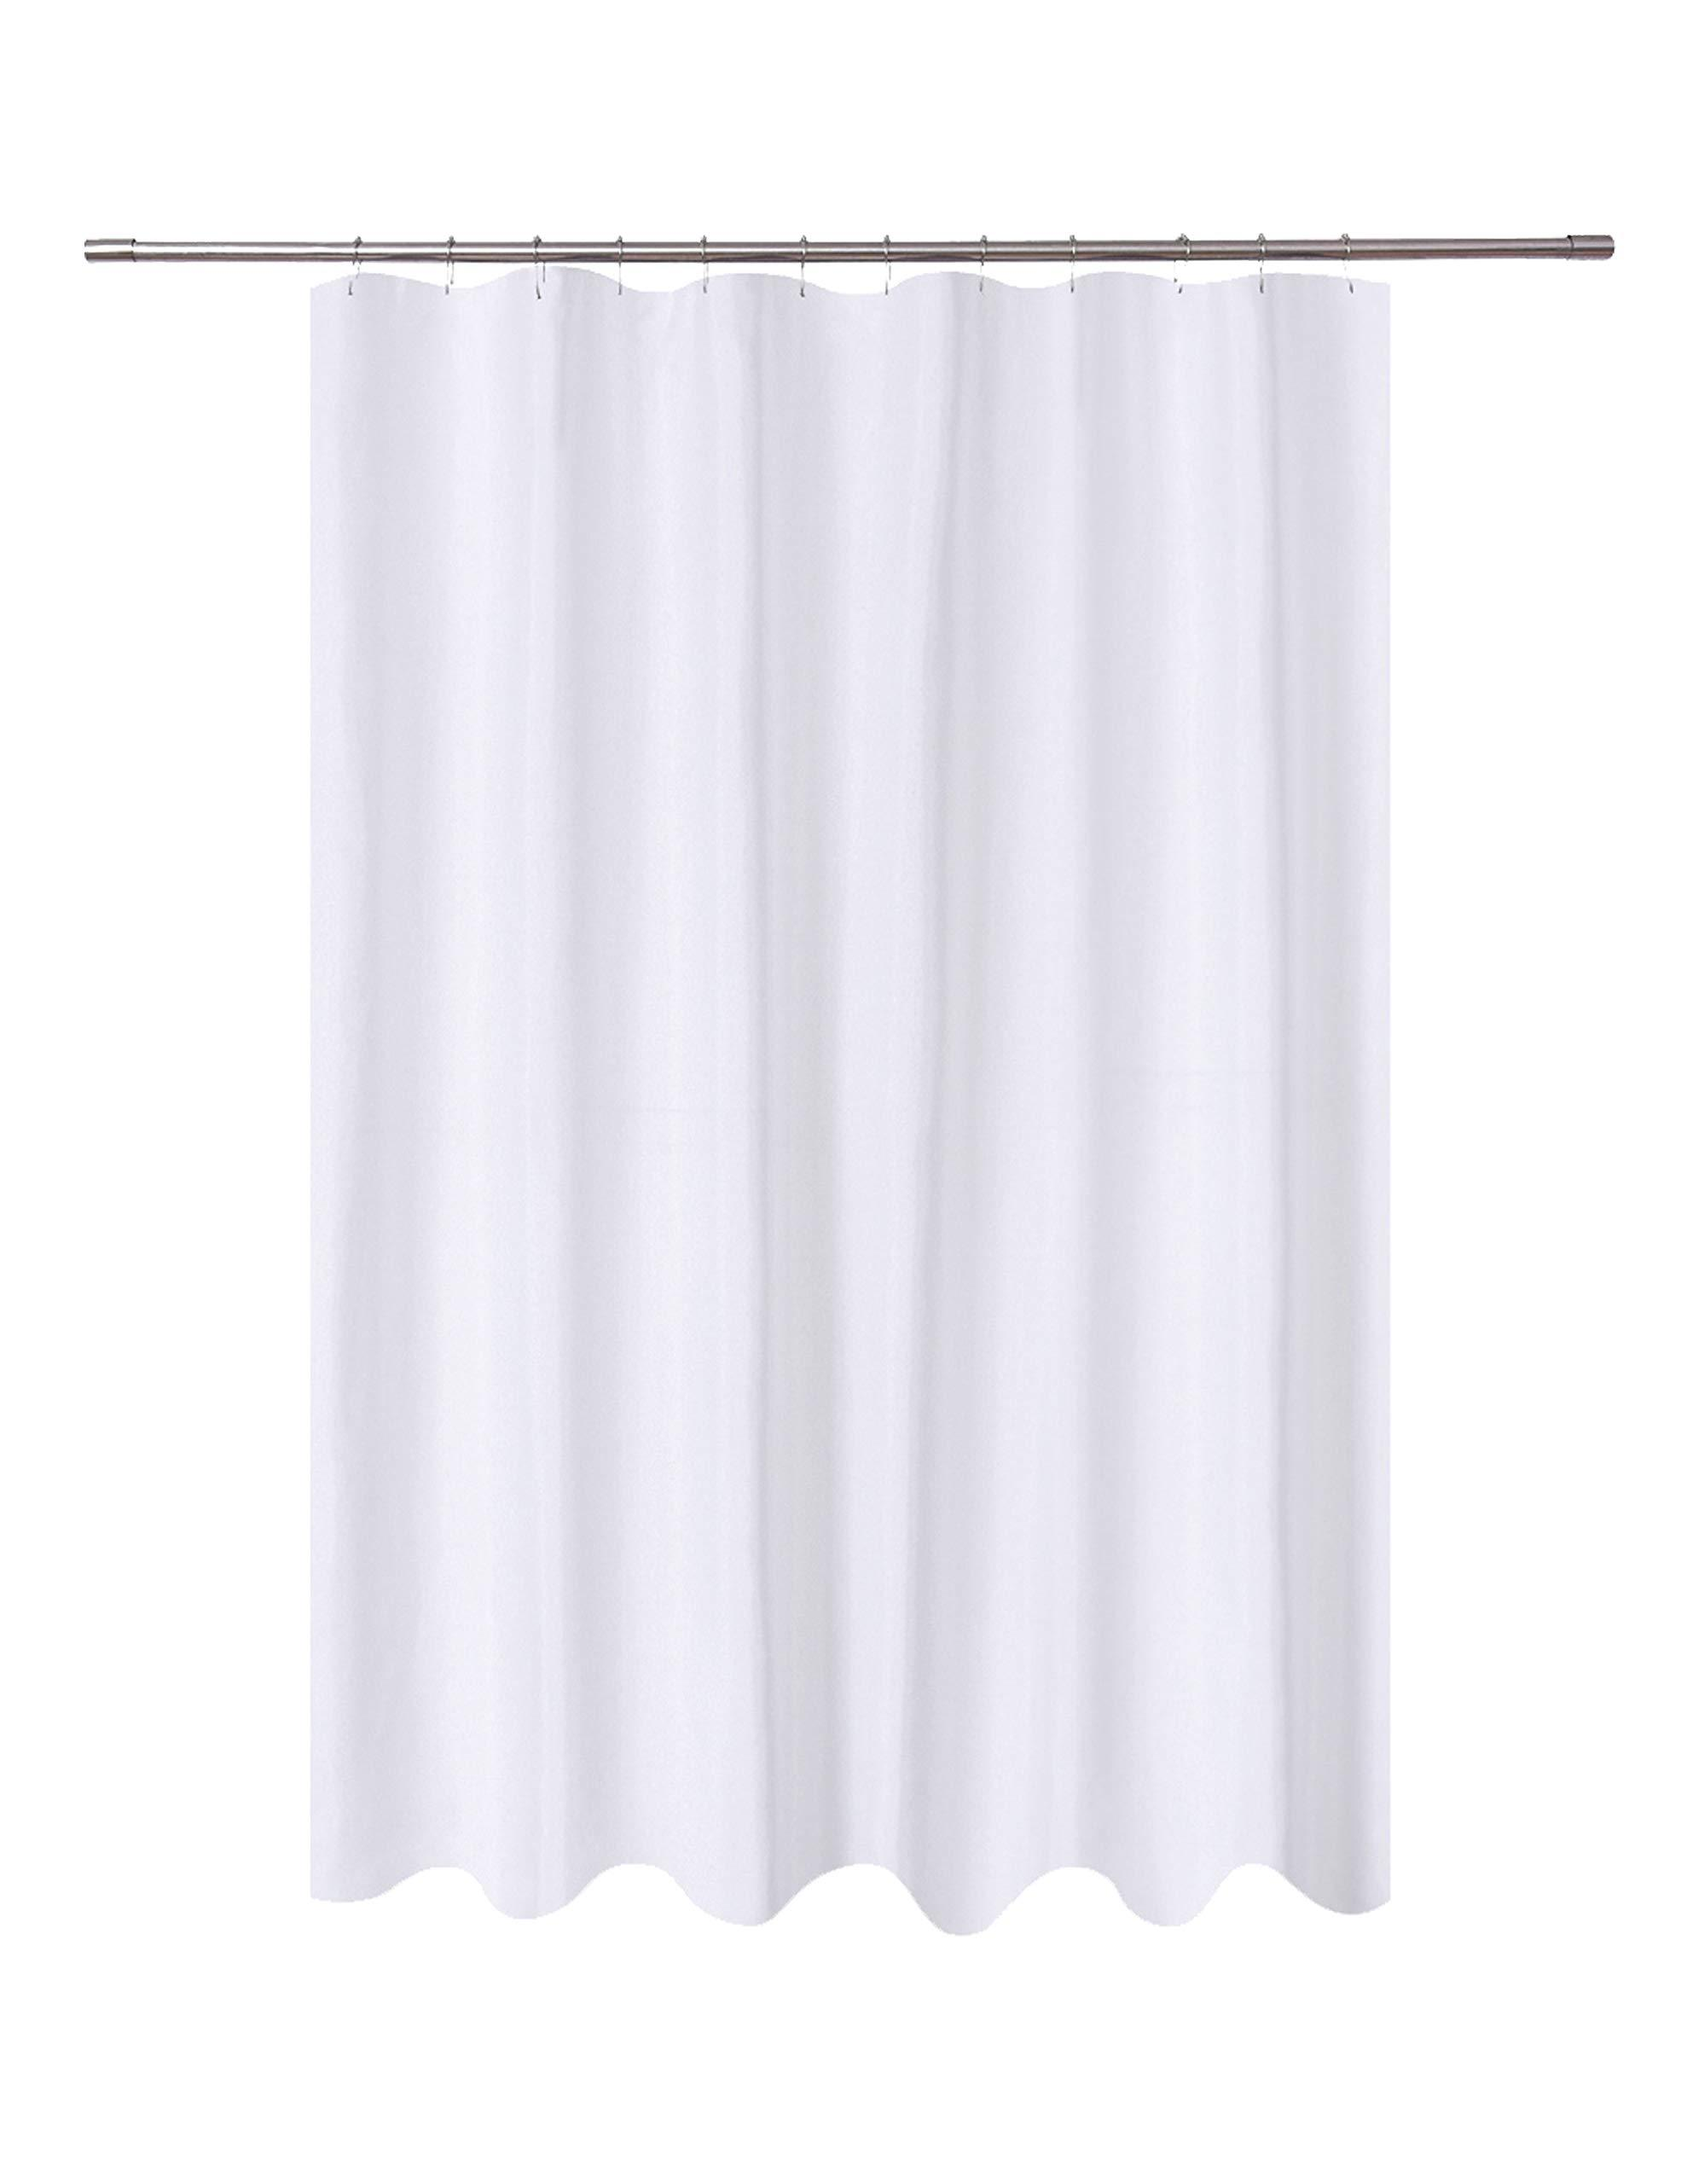 Semi Transparent Cobblestone Heavy Duty Extra Long Shower Curtain Liner 84 Inches Long Marble Bathroom Shower Curtain 72x84 Inch with 5 Magnets